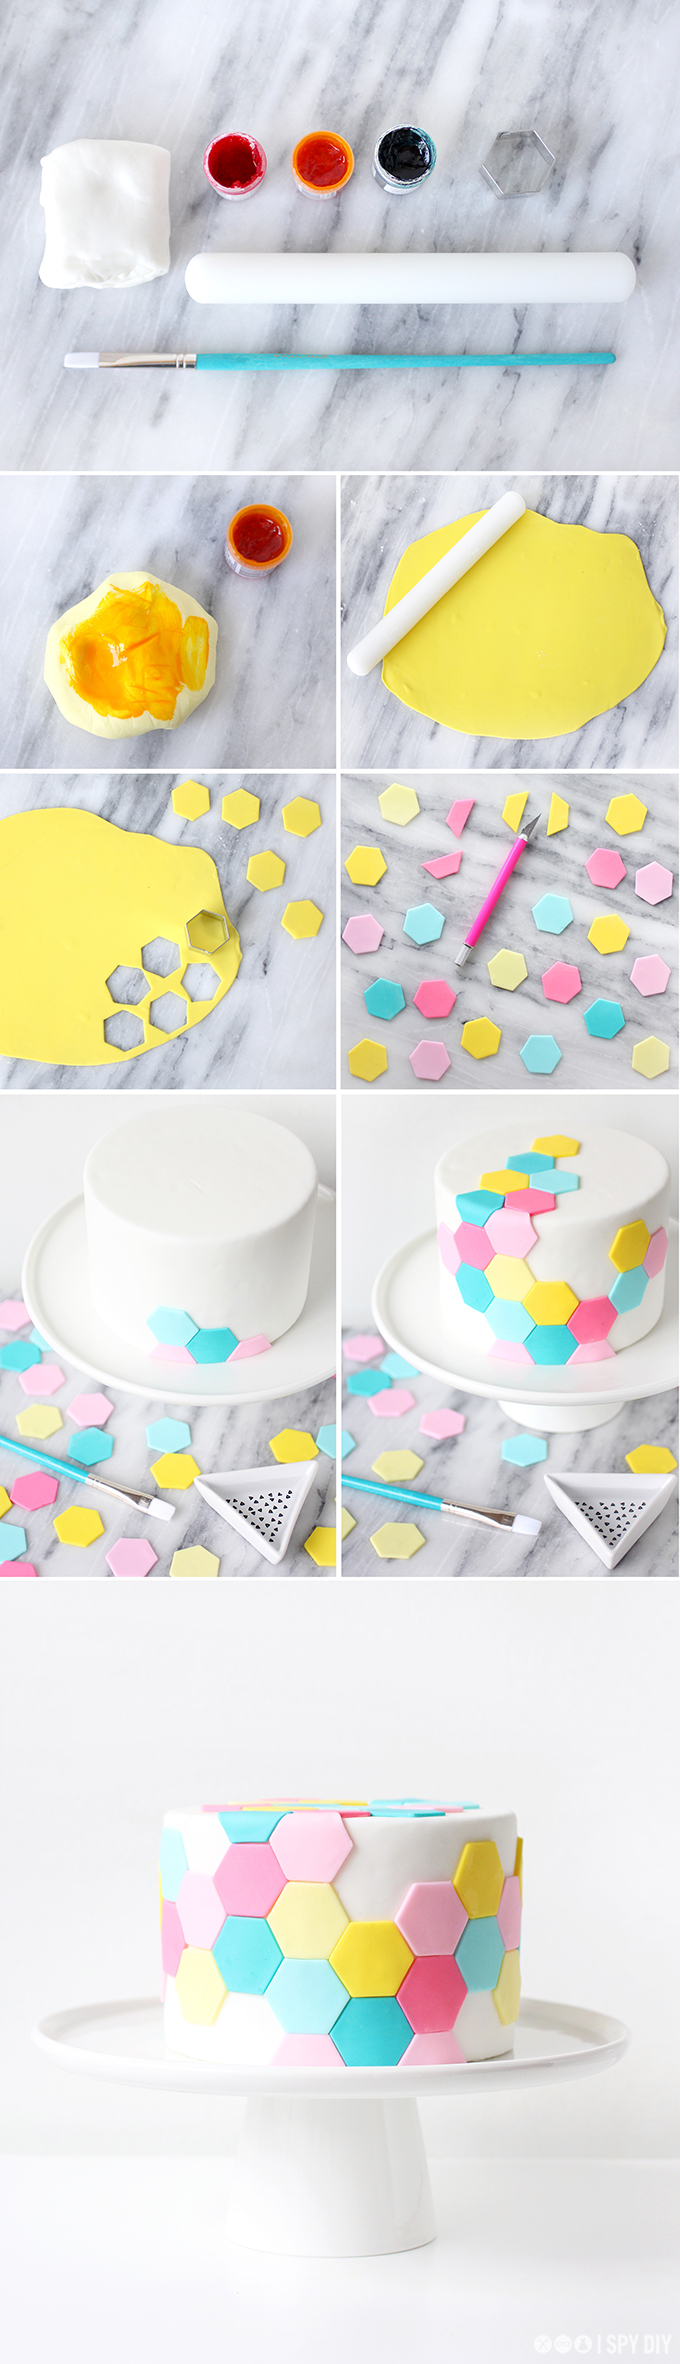 ispydiy_hexagoncake_steps